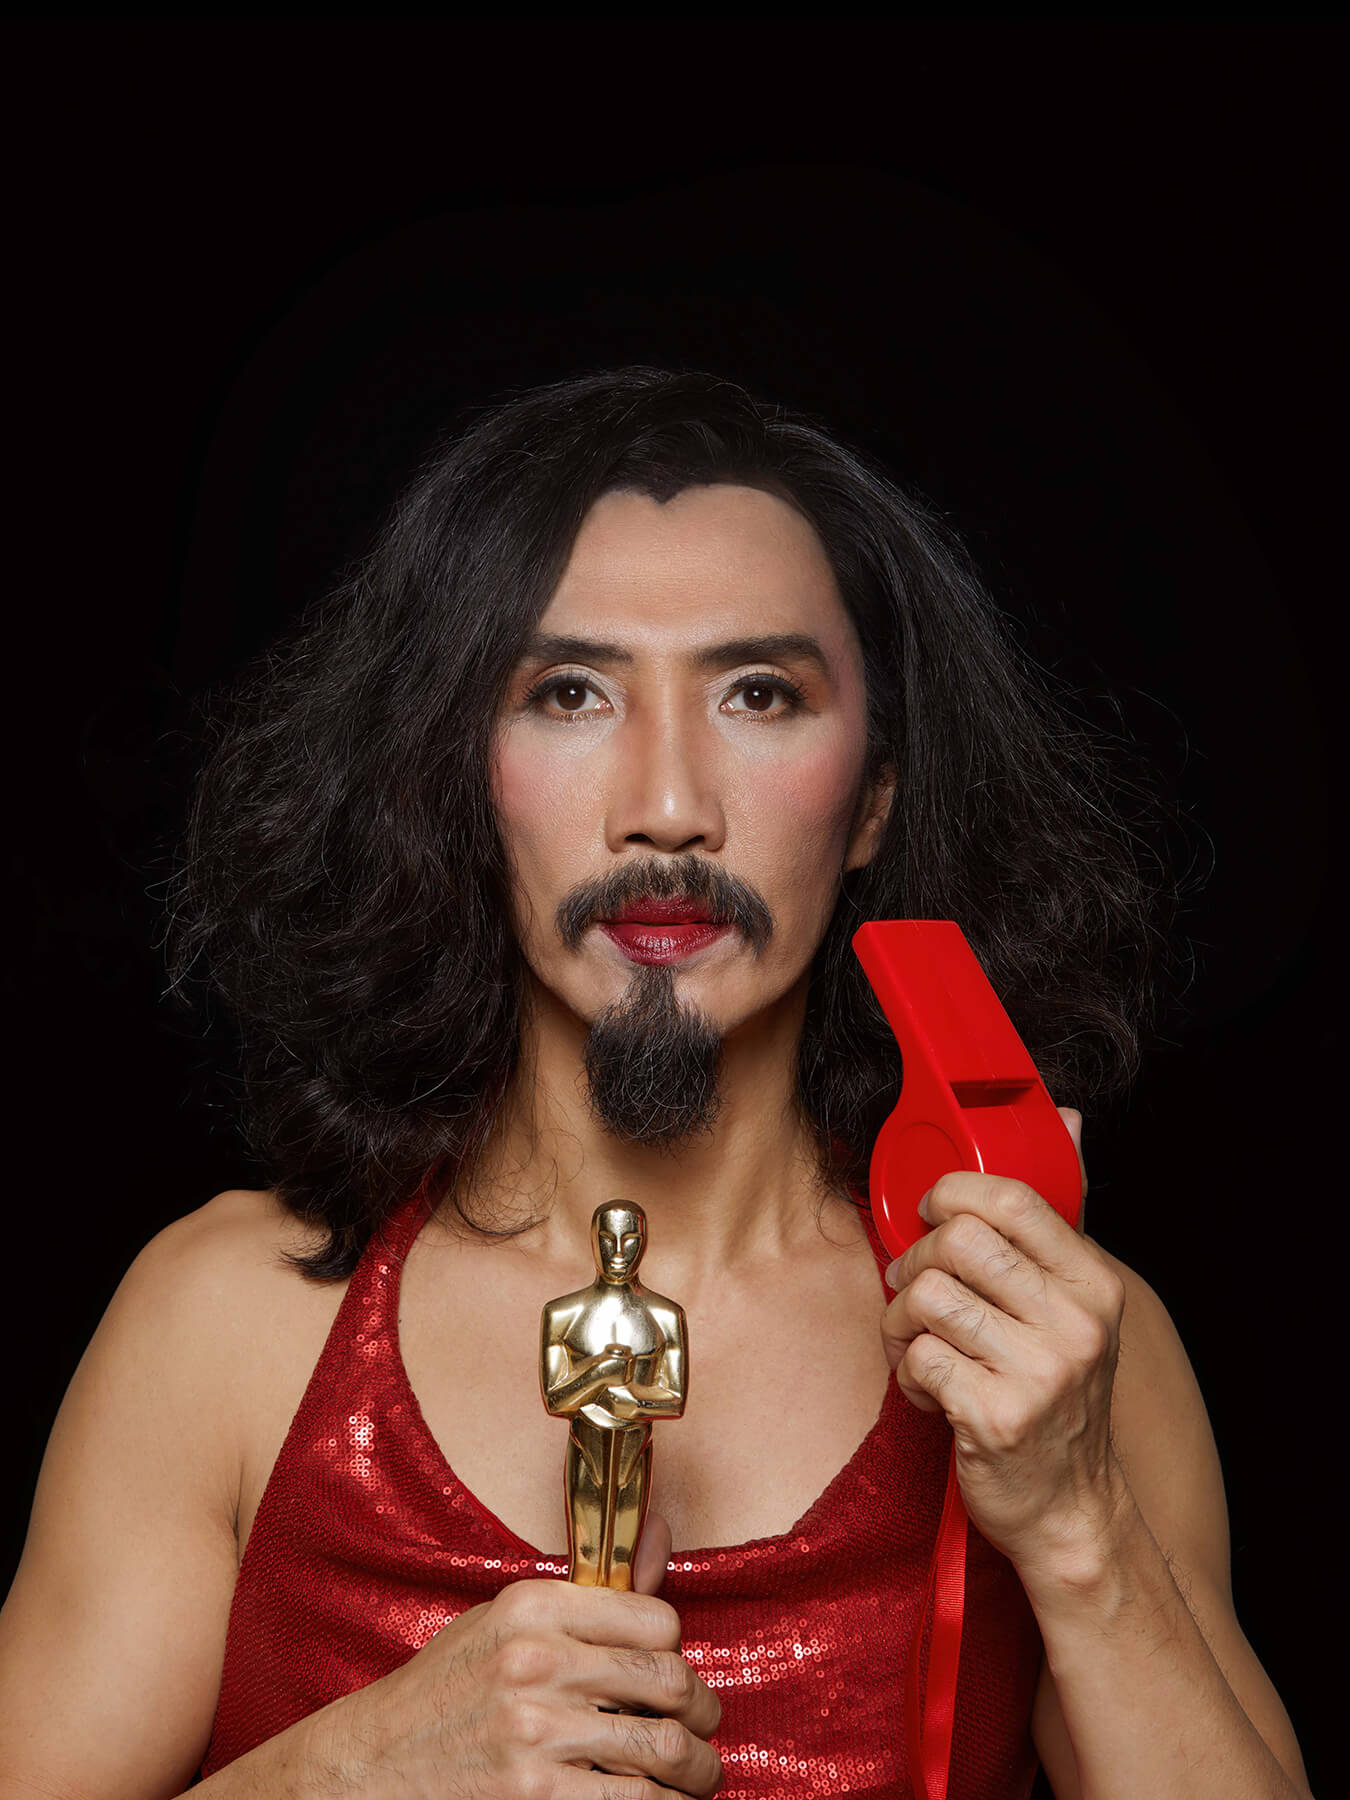 4 March 2018 Derong is holding an Oscar Statuette and oversized whistle